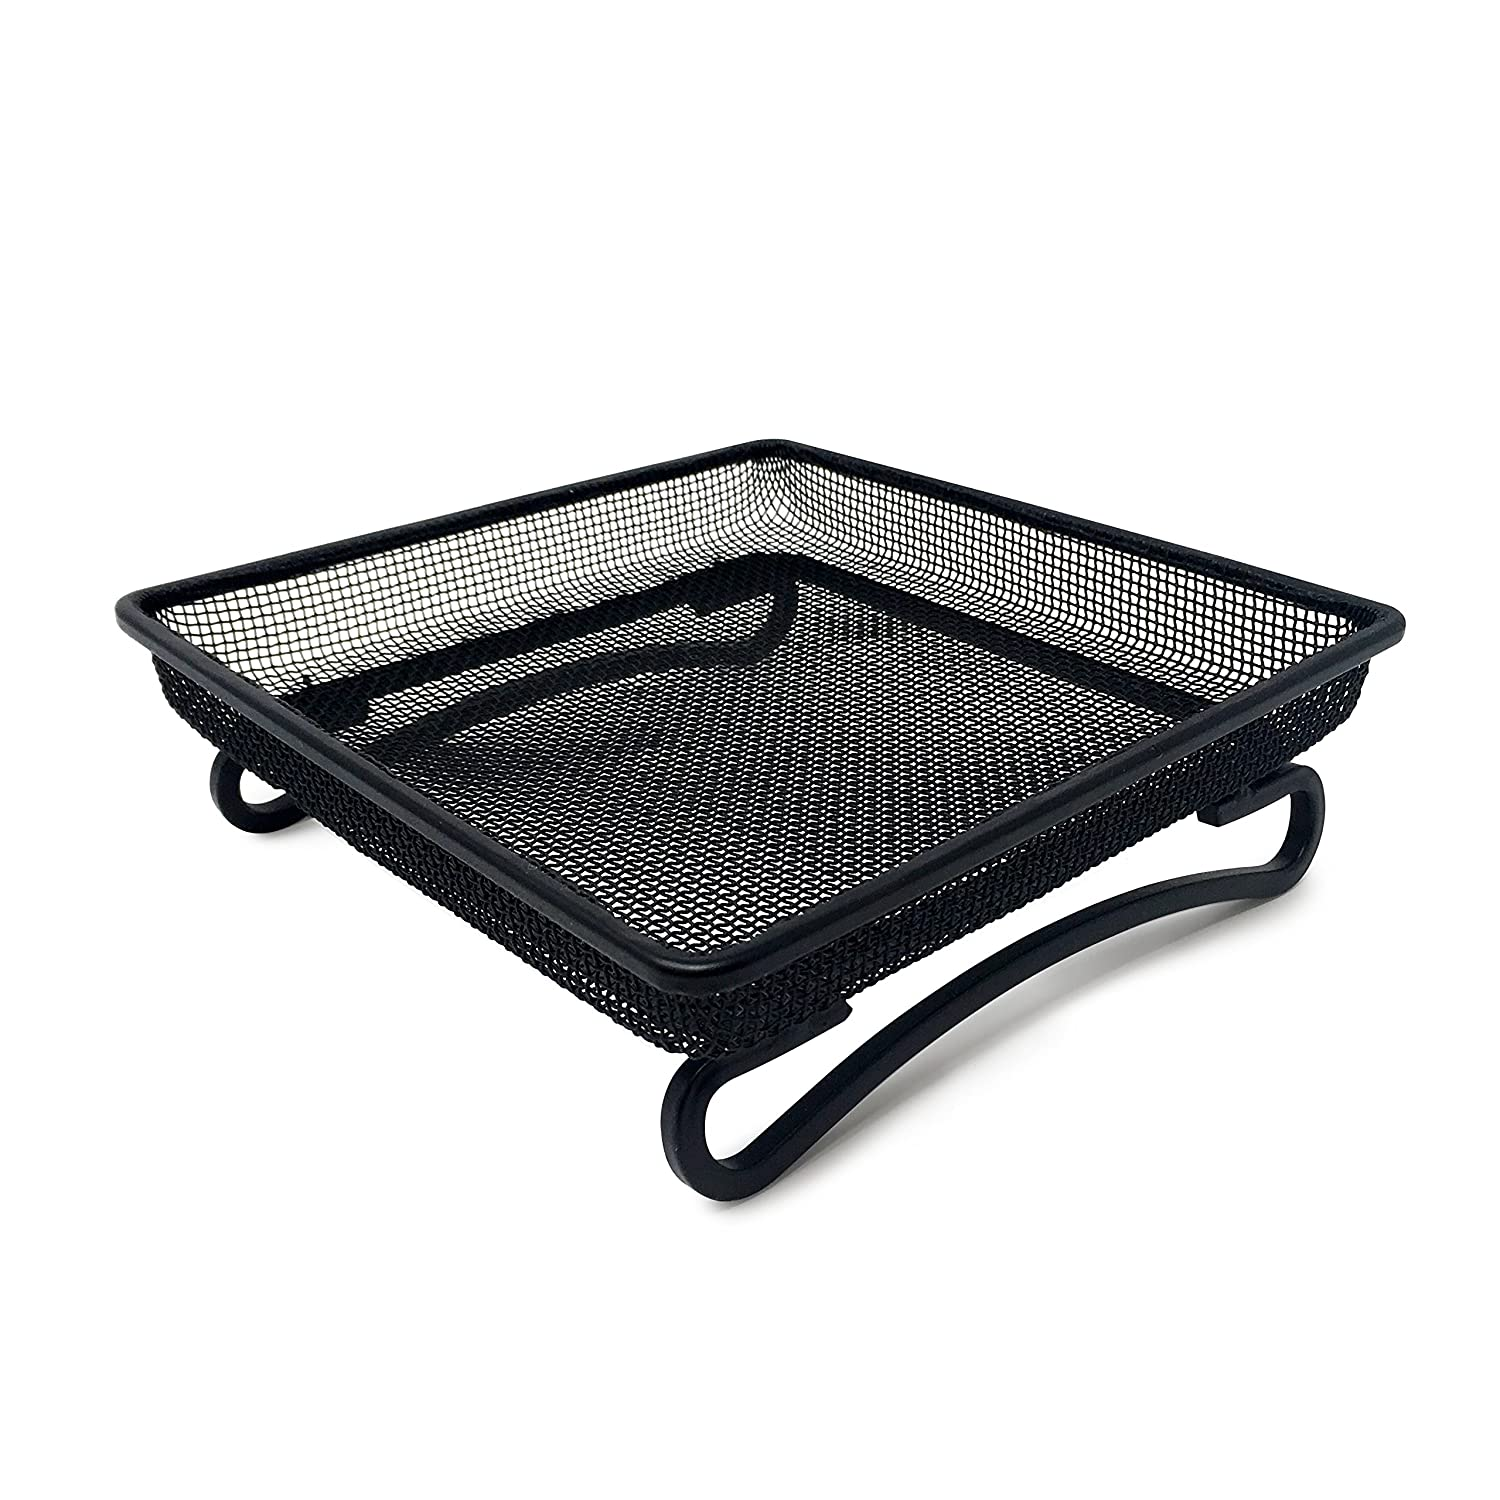 Ground Bird Feeder Tray for Feeding Birds That Feed Off The Ground | Durable and Compact Platform Bird Feeder Dish Size 7 x 7 x 2 inches